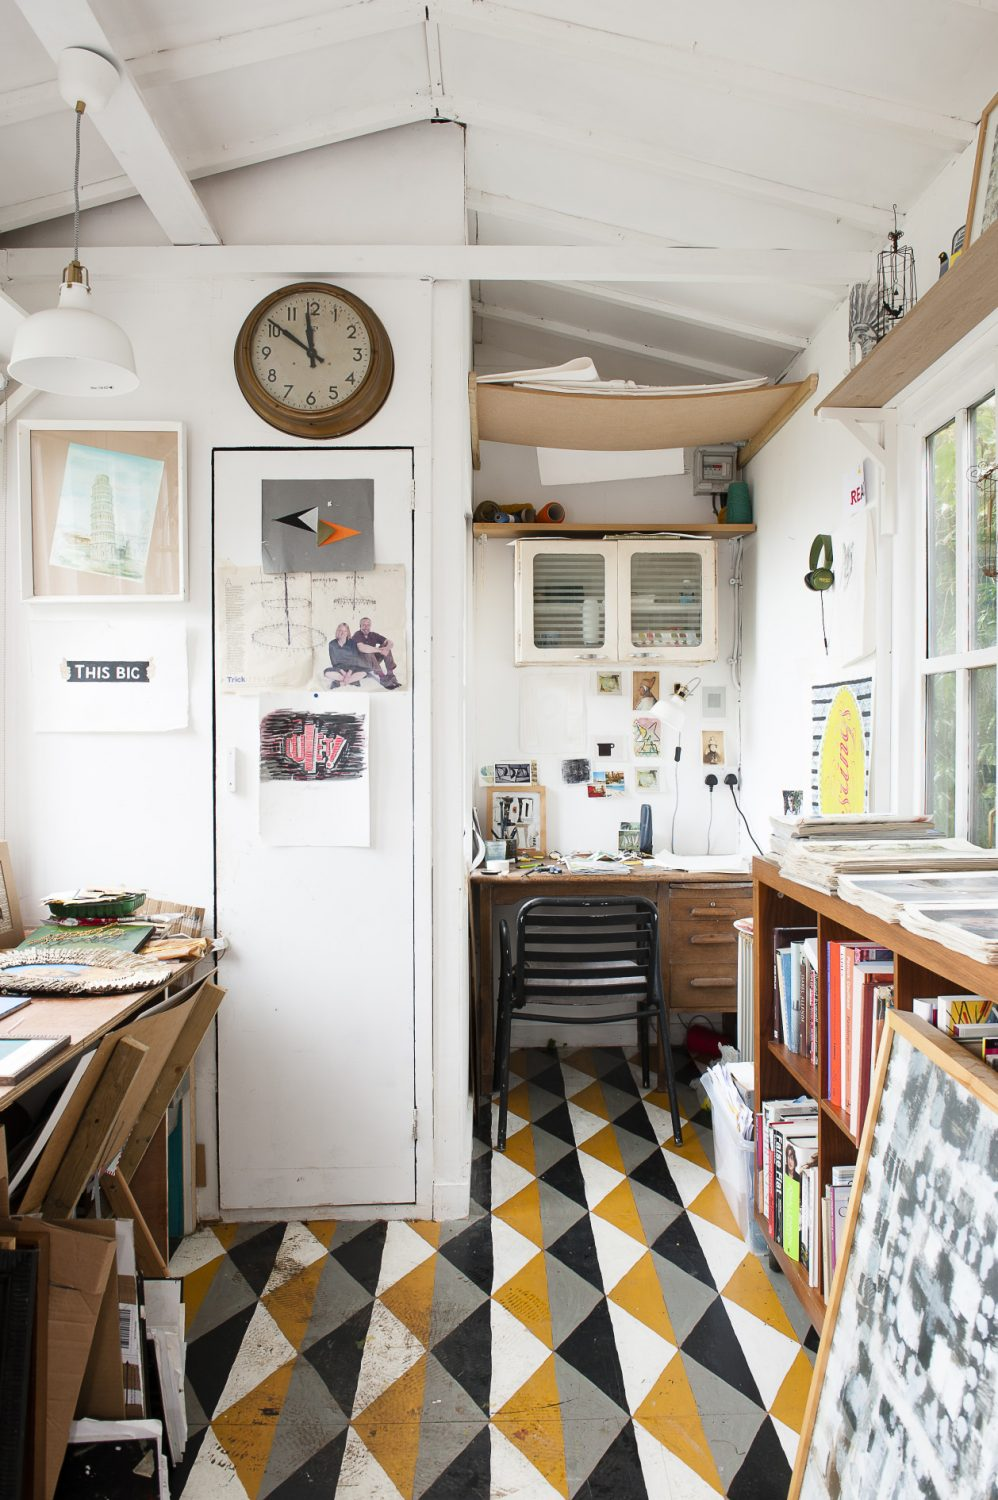 John ensured that the studio was constructed from as much reclaimed material as possible. The wooden floors have been hand-painted with a geometric pattern and the walls and desktops are flooded with inspiring finds